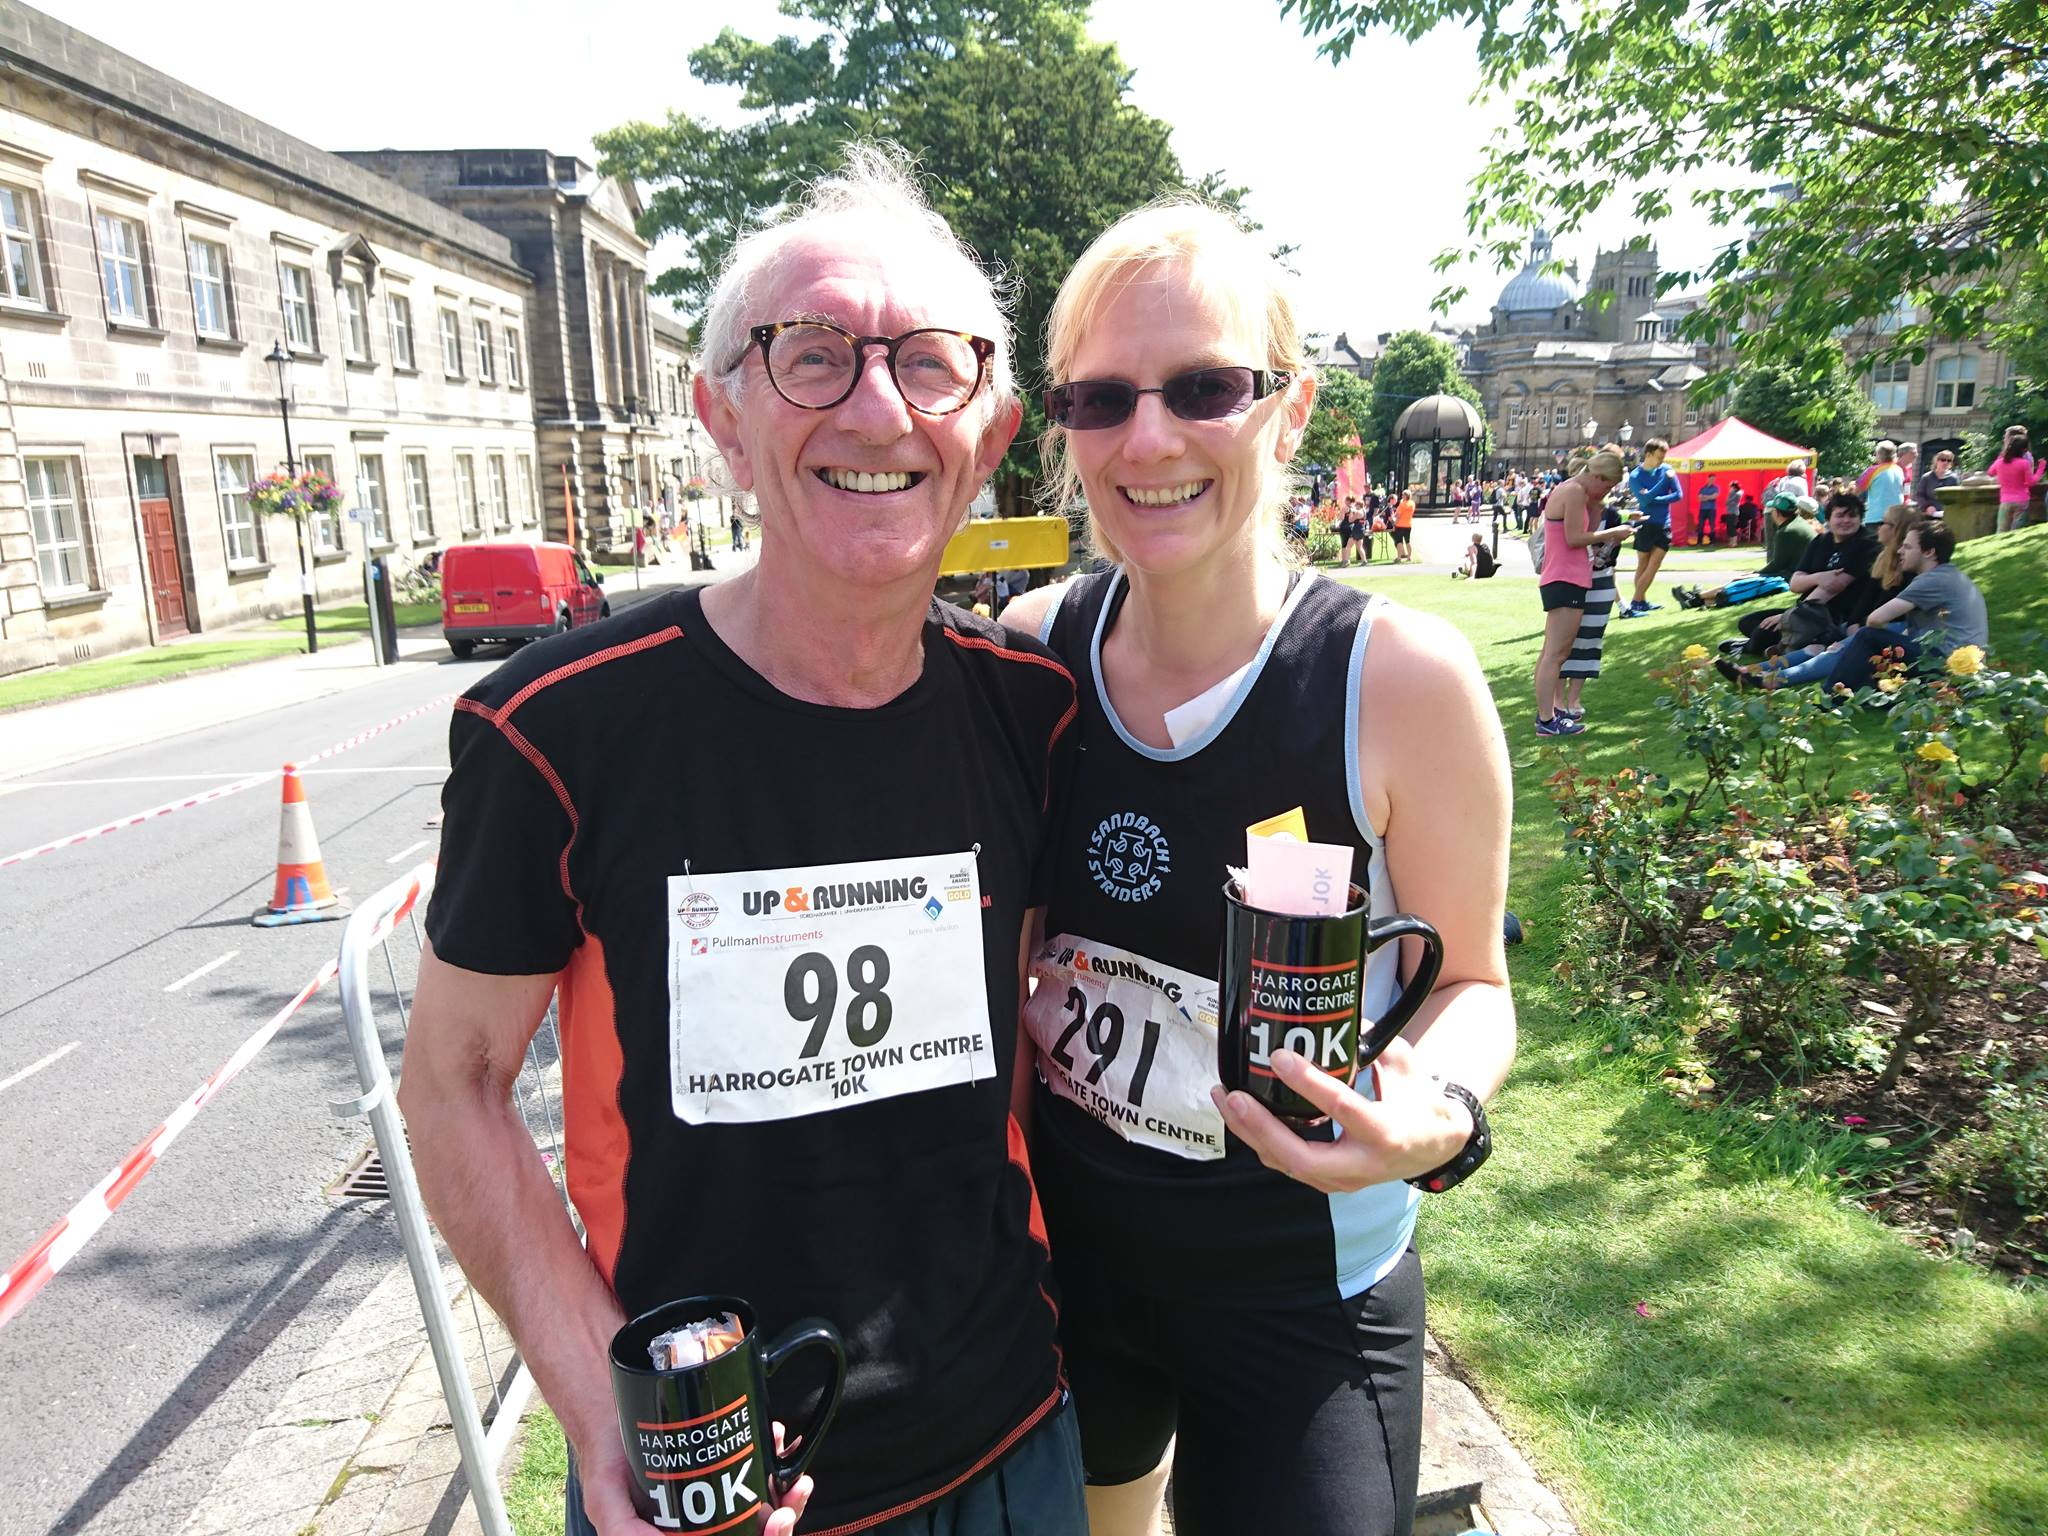 Lucy Lee and her father at the Harrogate 10k